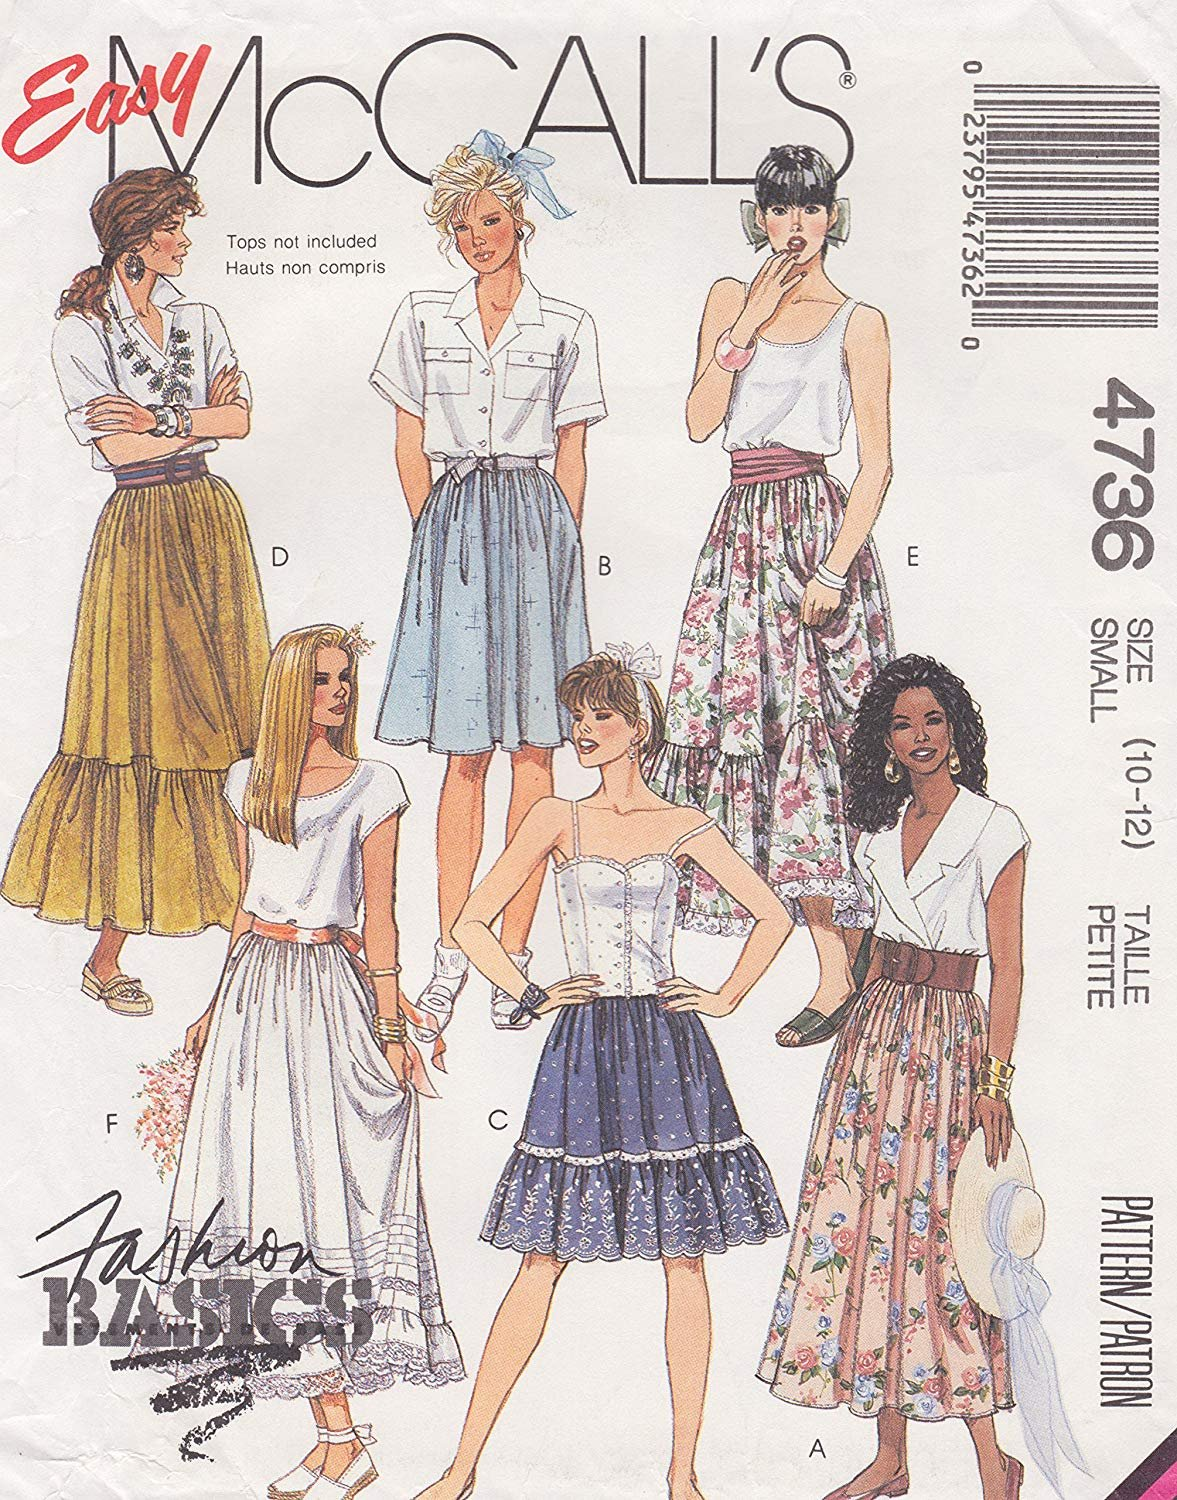 1990 Easy McCall's Shirt & Skirt Pattern M-4736 Size (10-12)